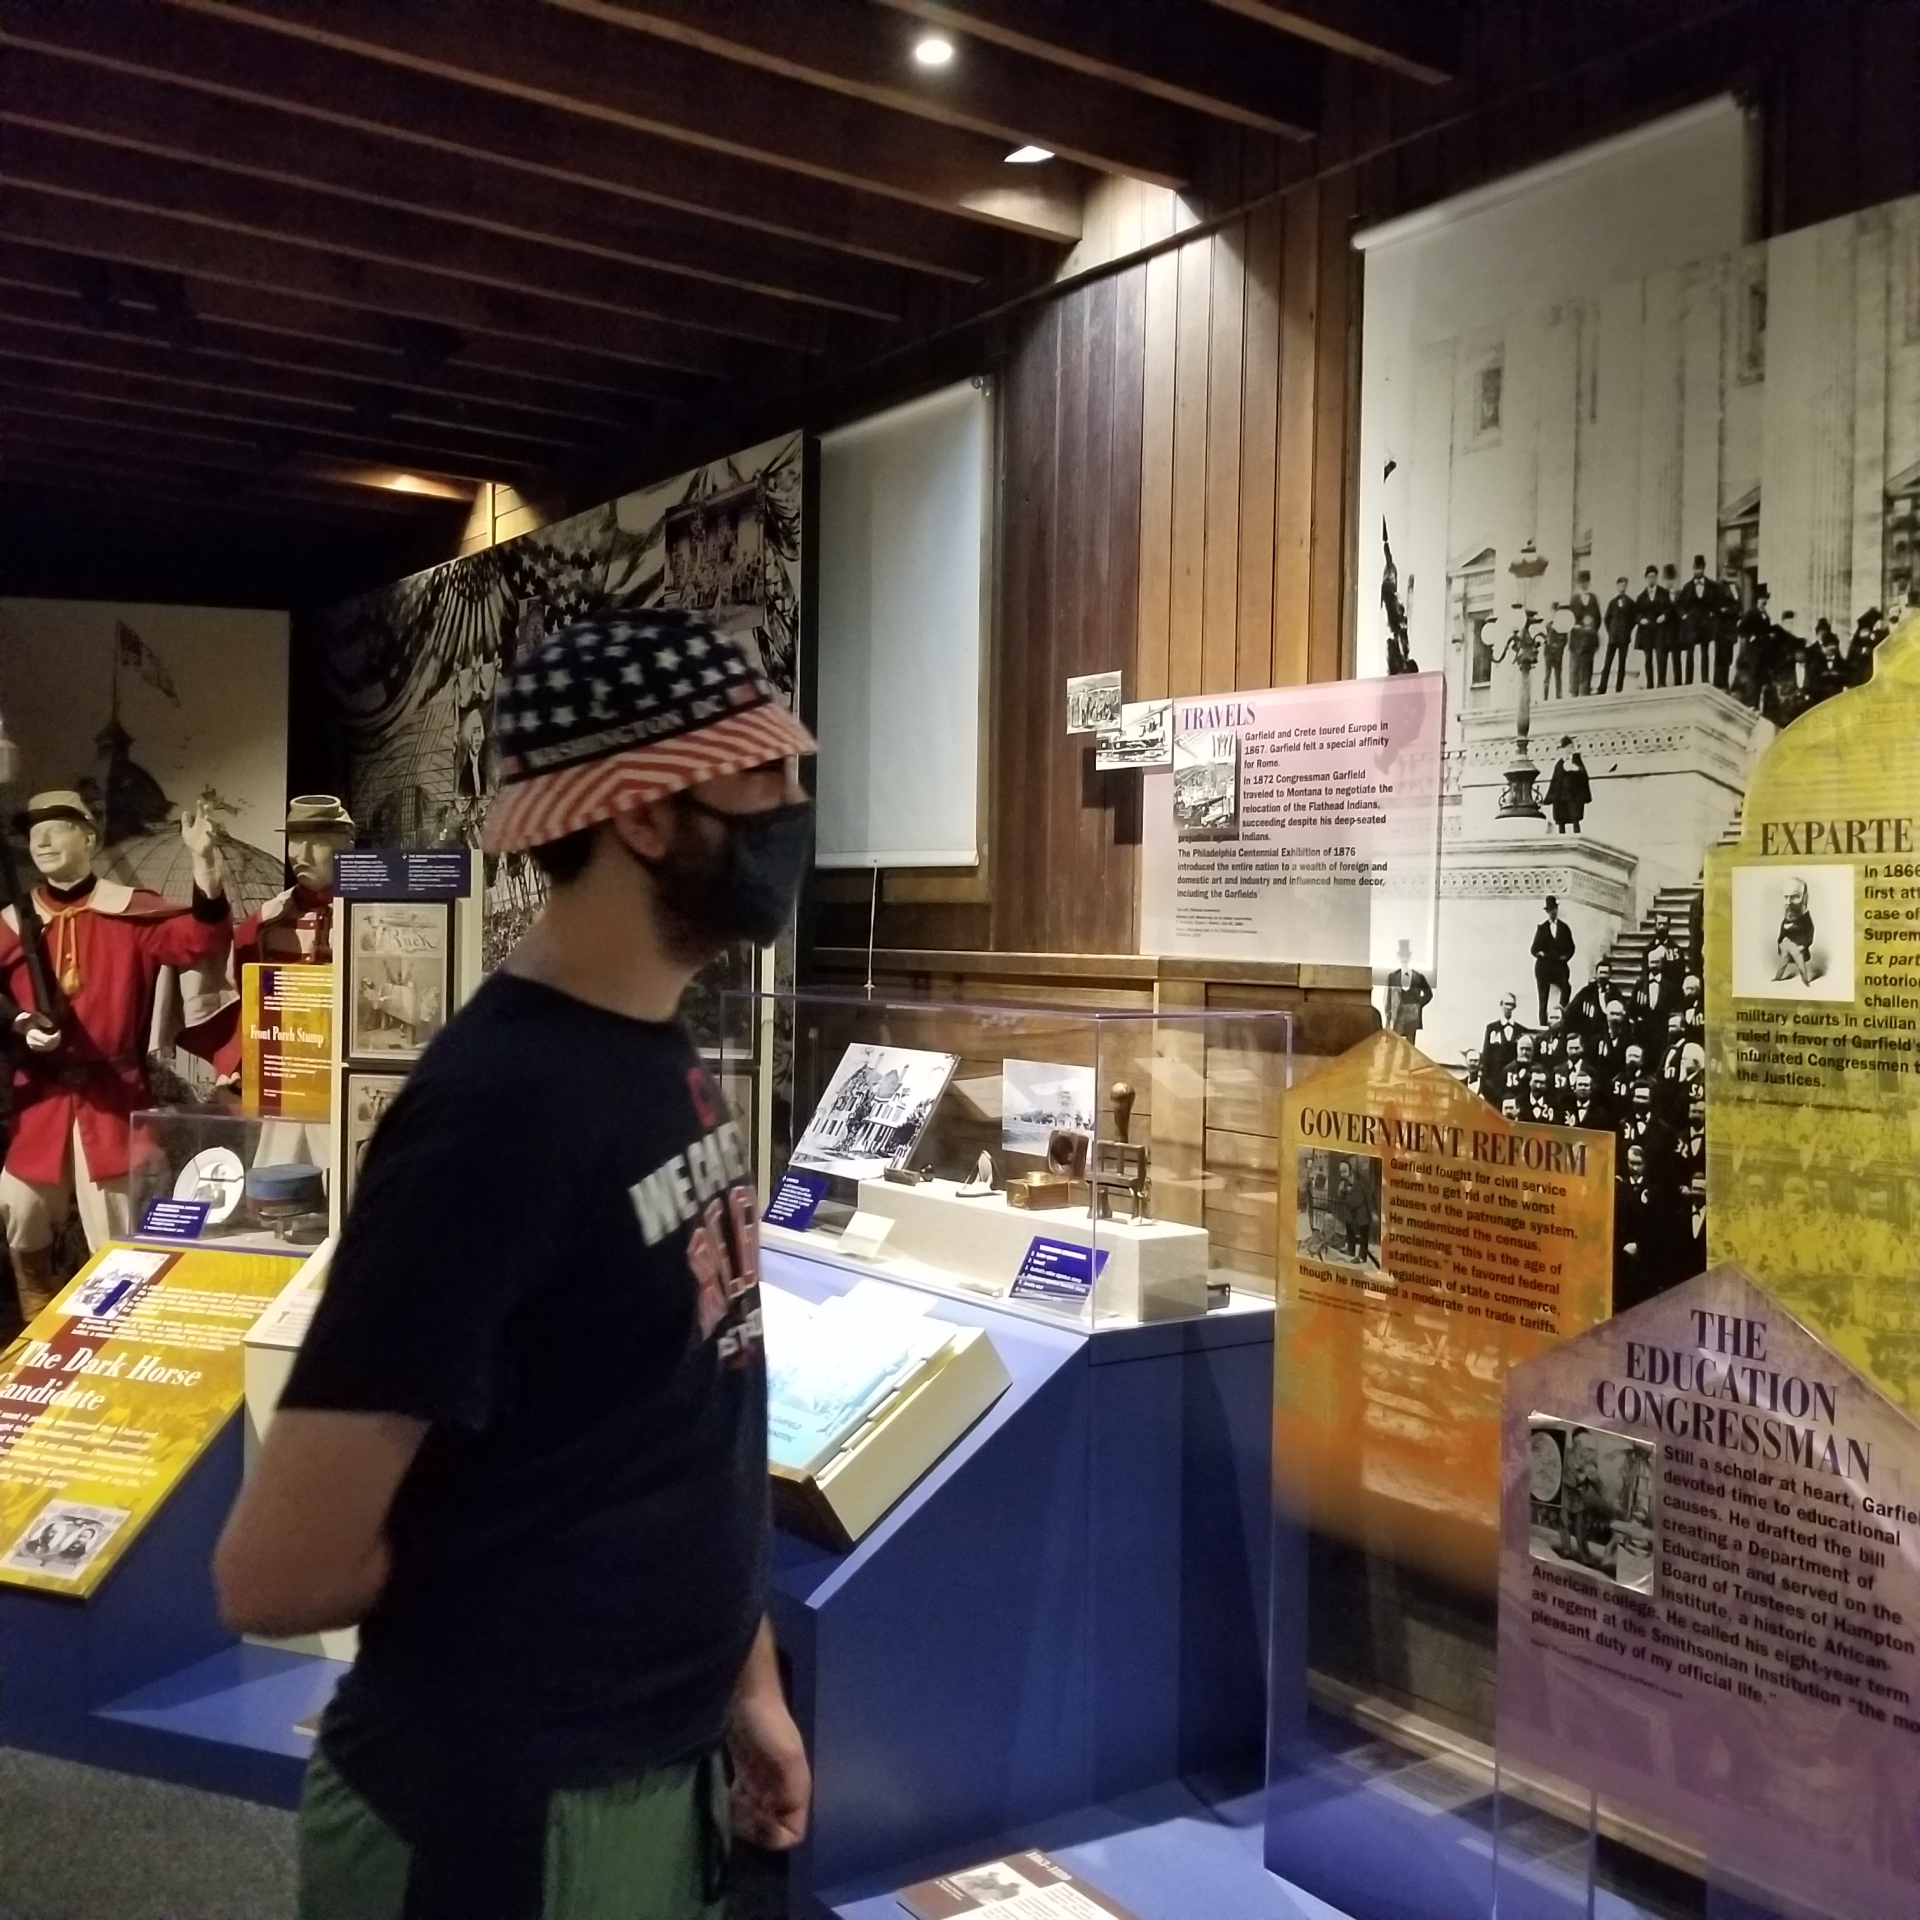 My son viewing the exhibit.